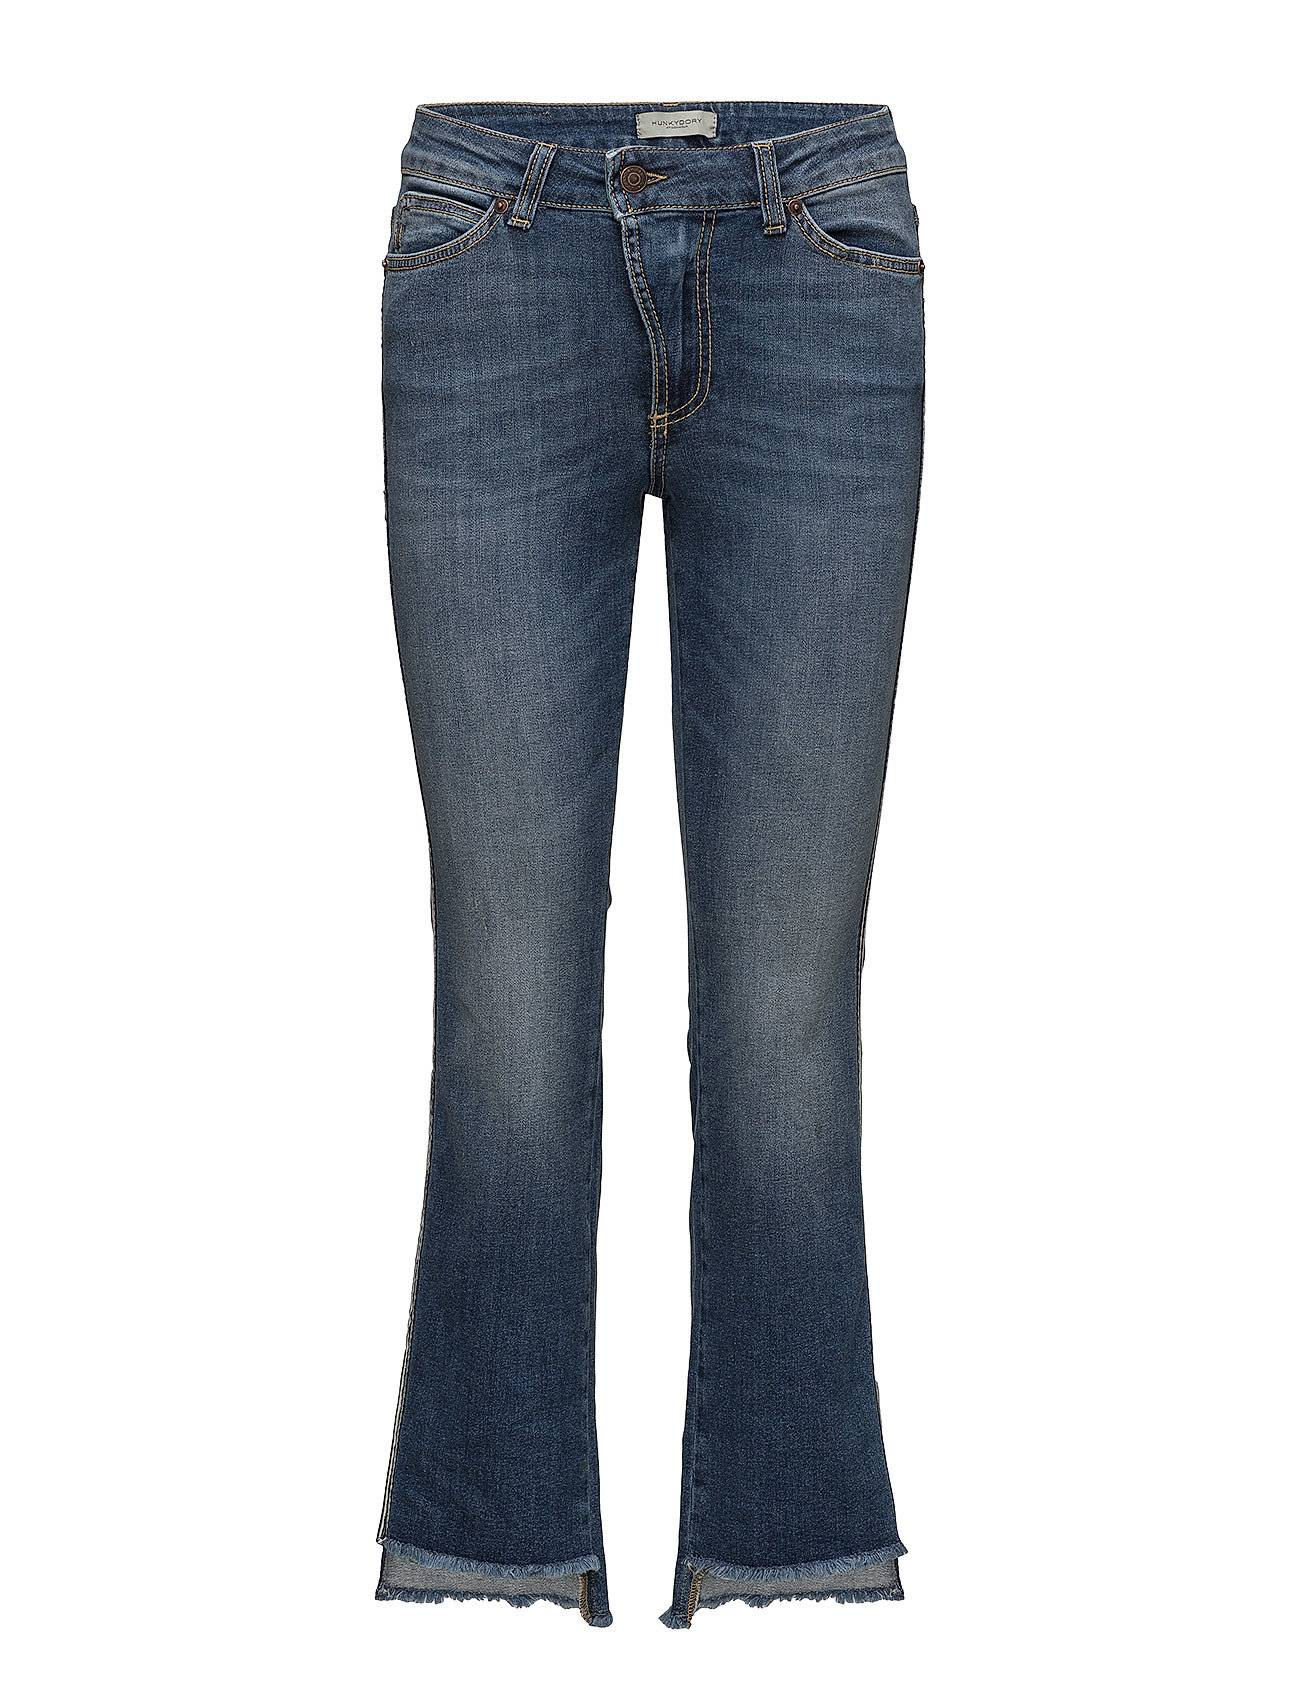 Hunkydory Denim Step Cut